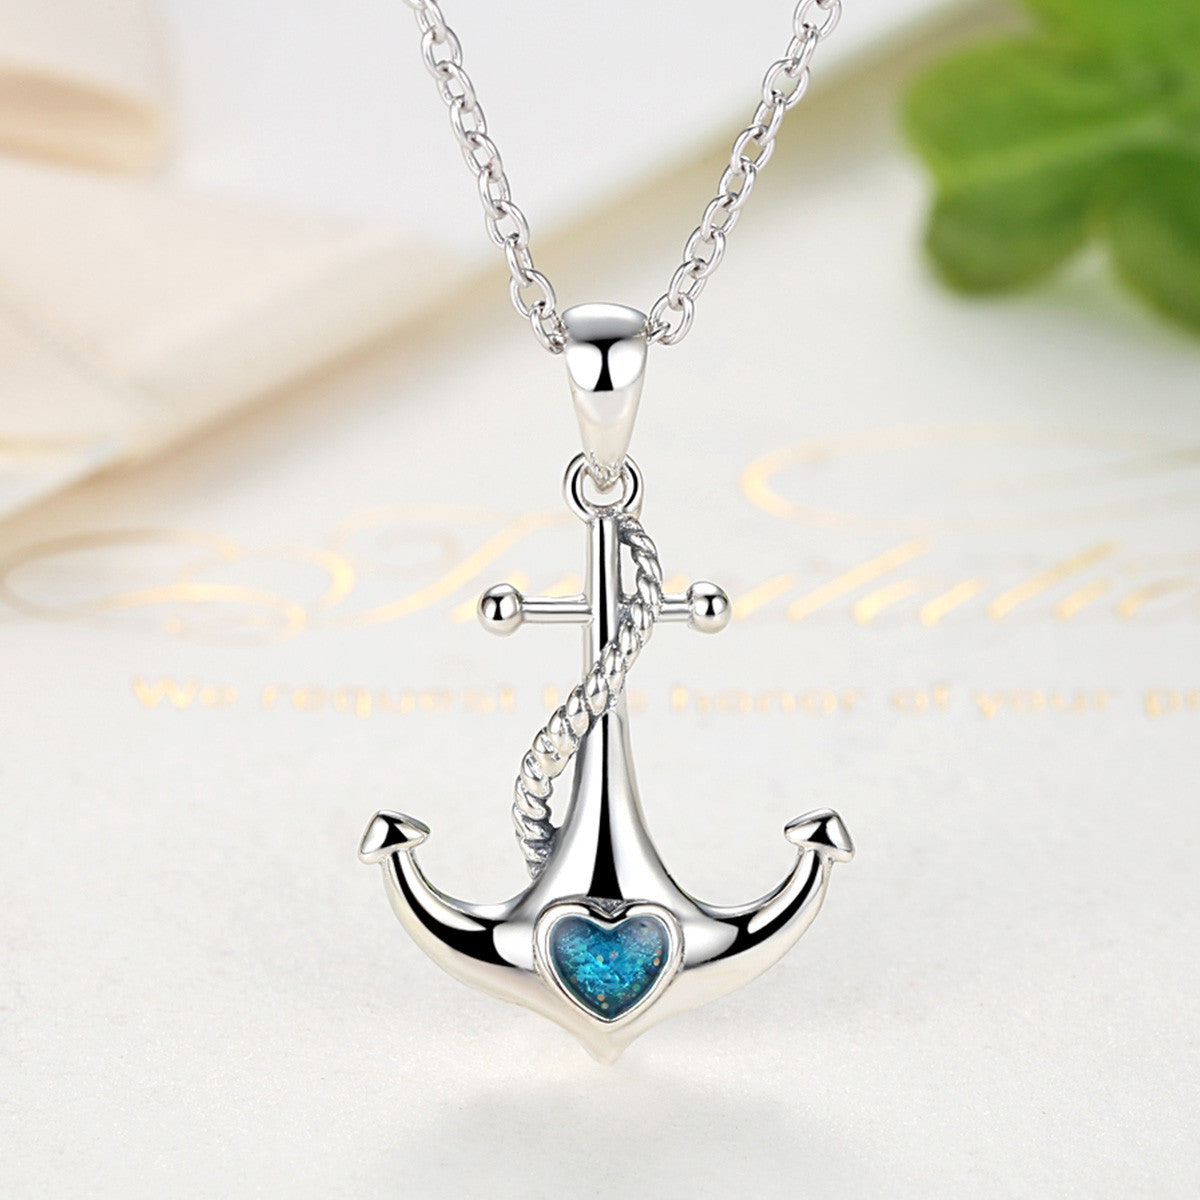 766080ba2 ... Classic 925 Sterling Silver Blue Heart Crystal Anchor Pendant Necklaces  Women Fashion Jewelry Engagement SCN051 ...